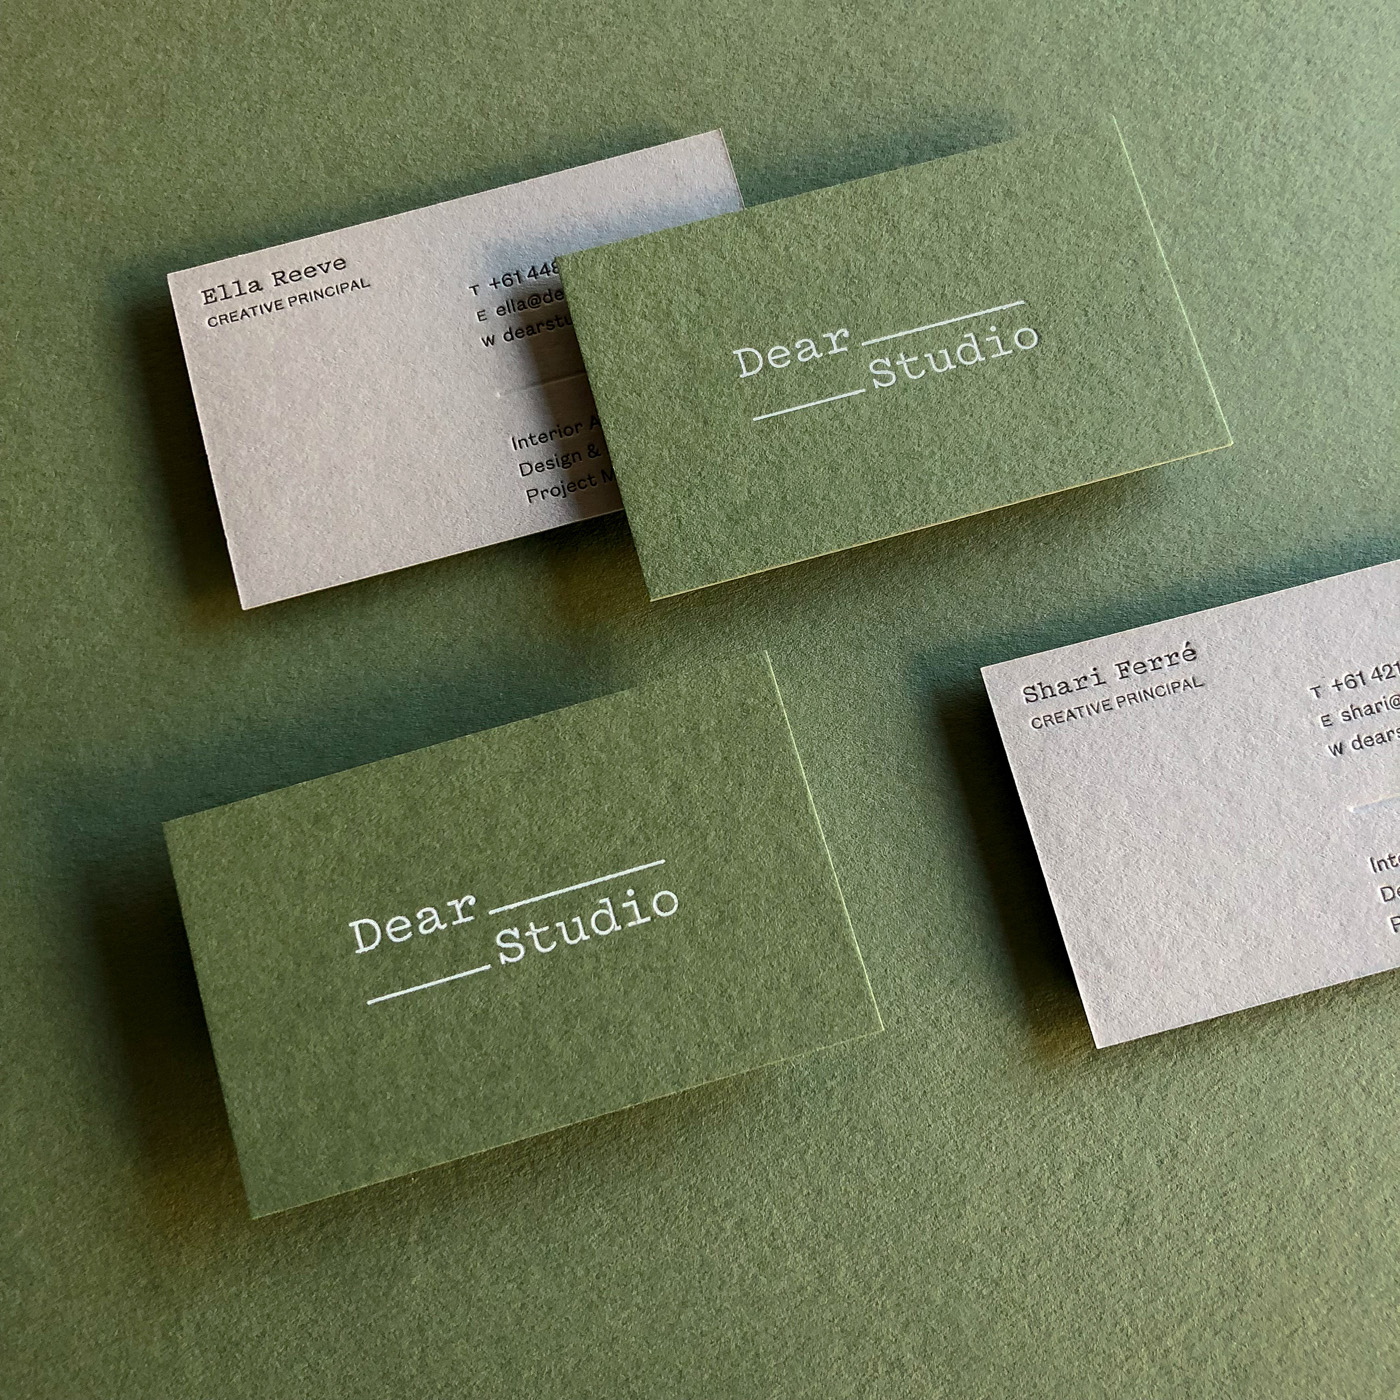 Duplex letterpress blind white foil business cards for Dear Studio on  Colorplan Mid Green and Real Grey 3